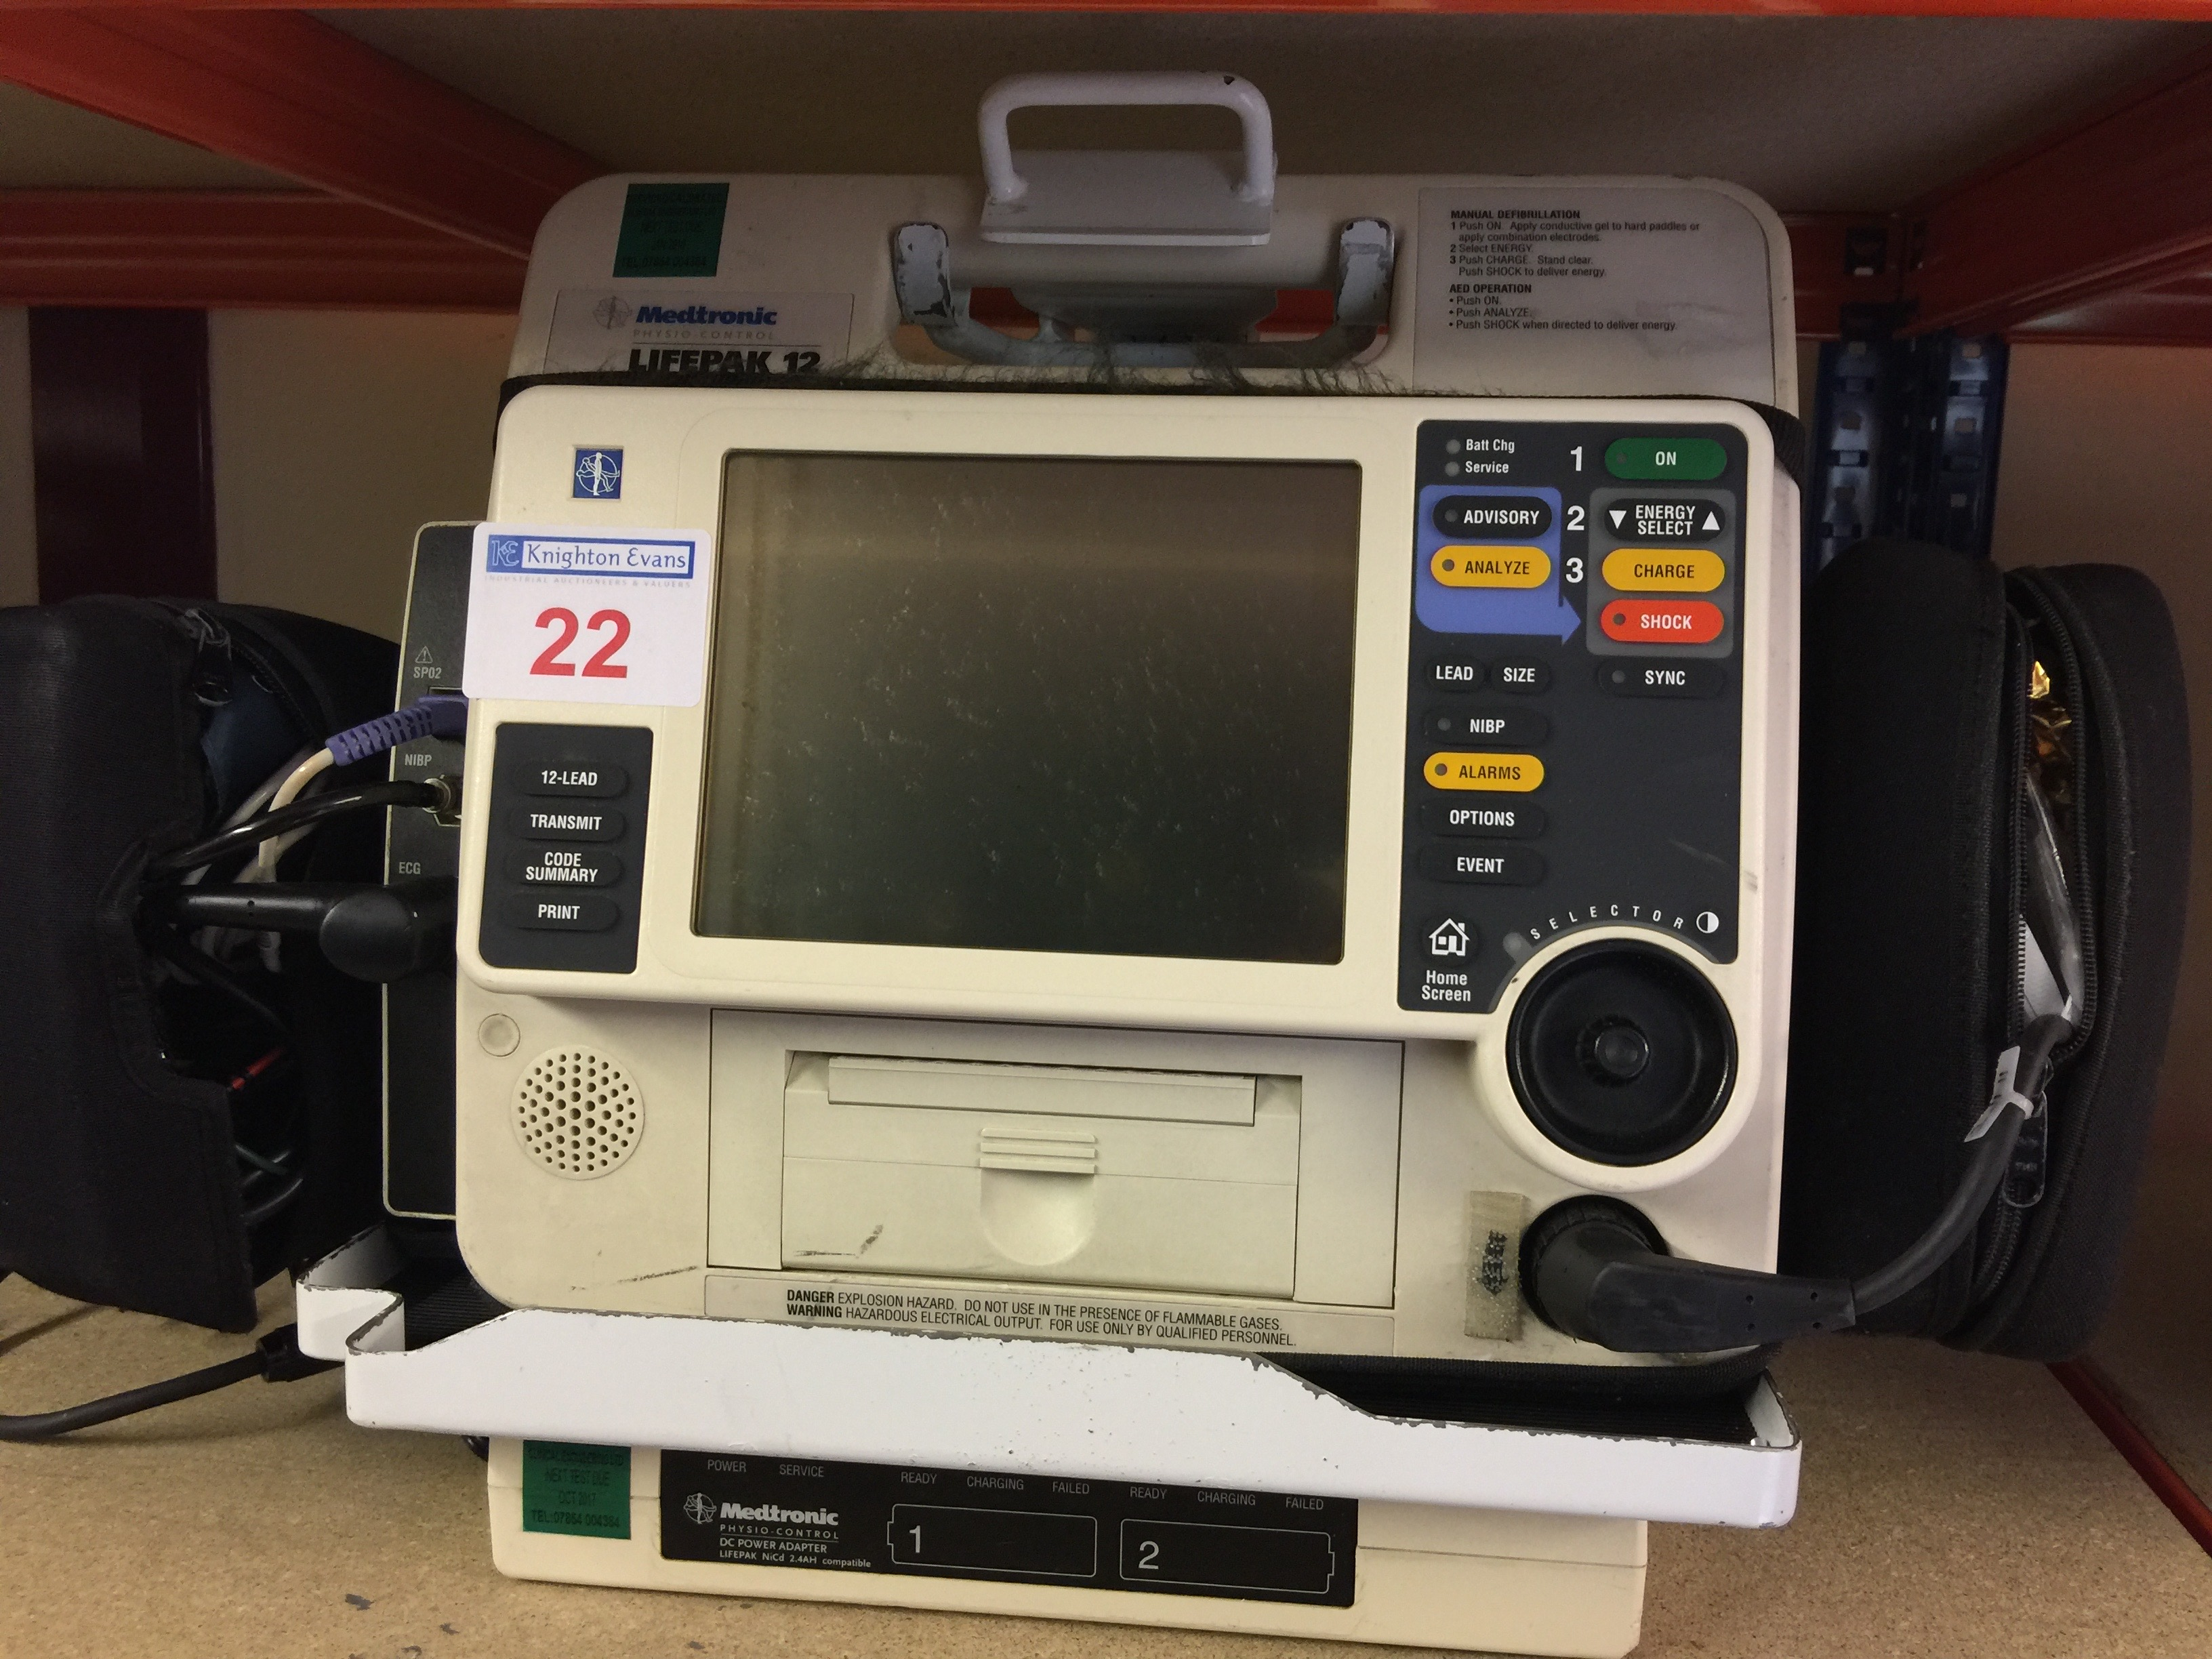 Lot 22 - Medtronic Physio Control Life-Pak 12 portable defibrillator with wall bracket, charger, leads and